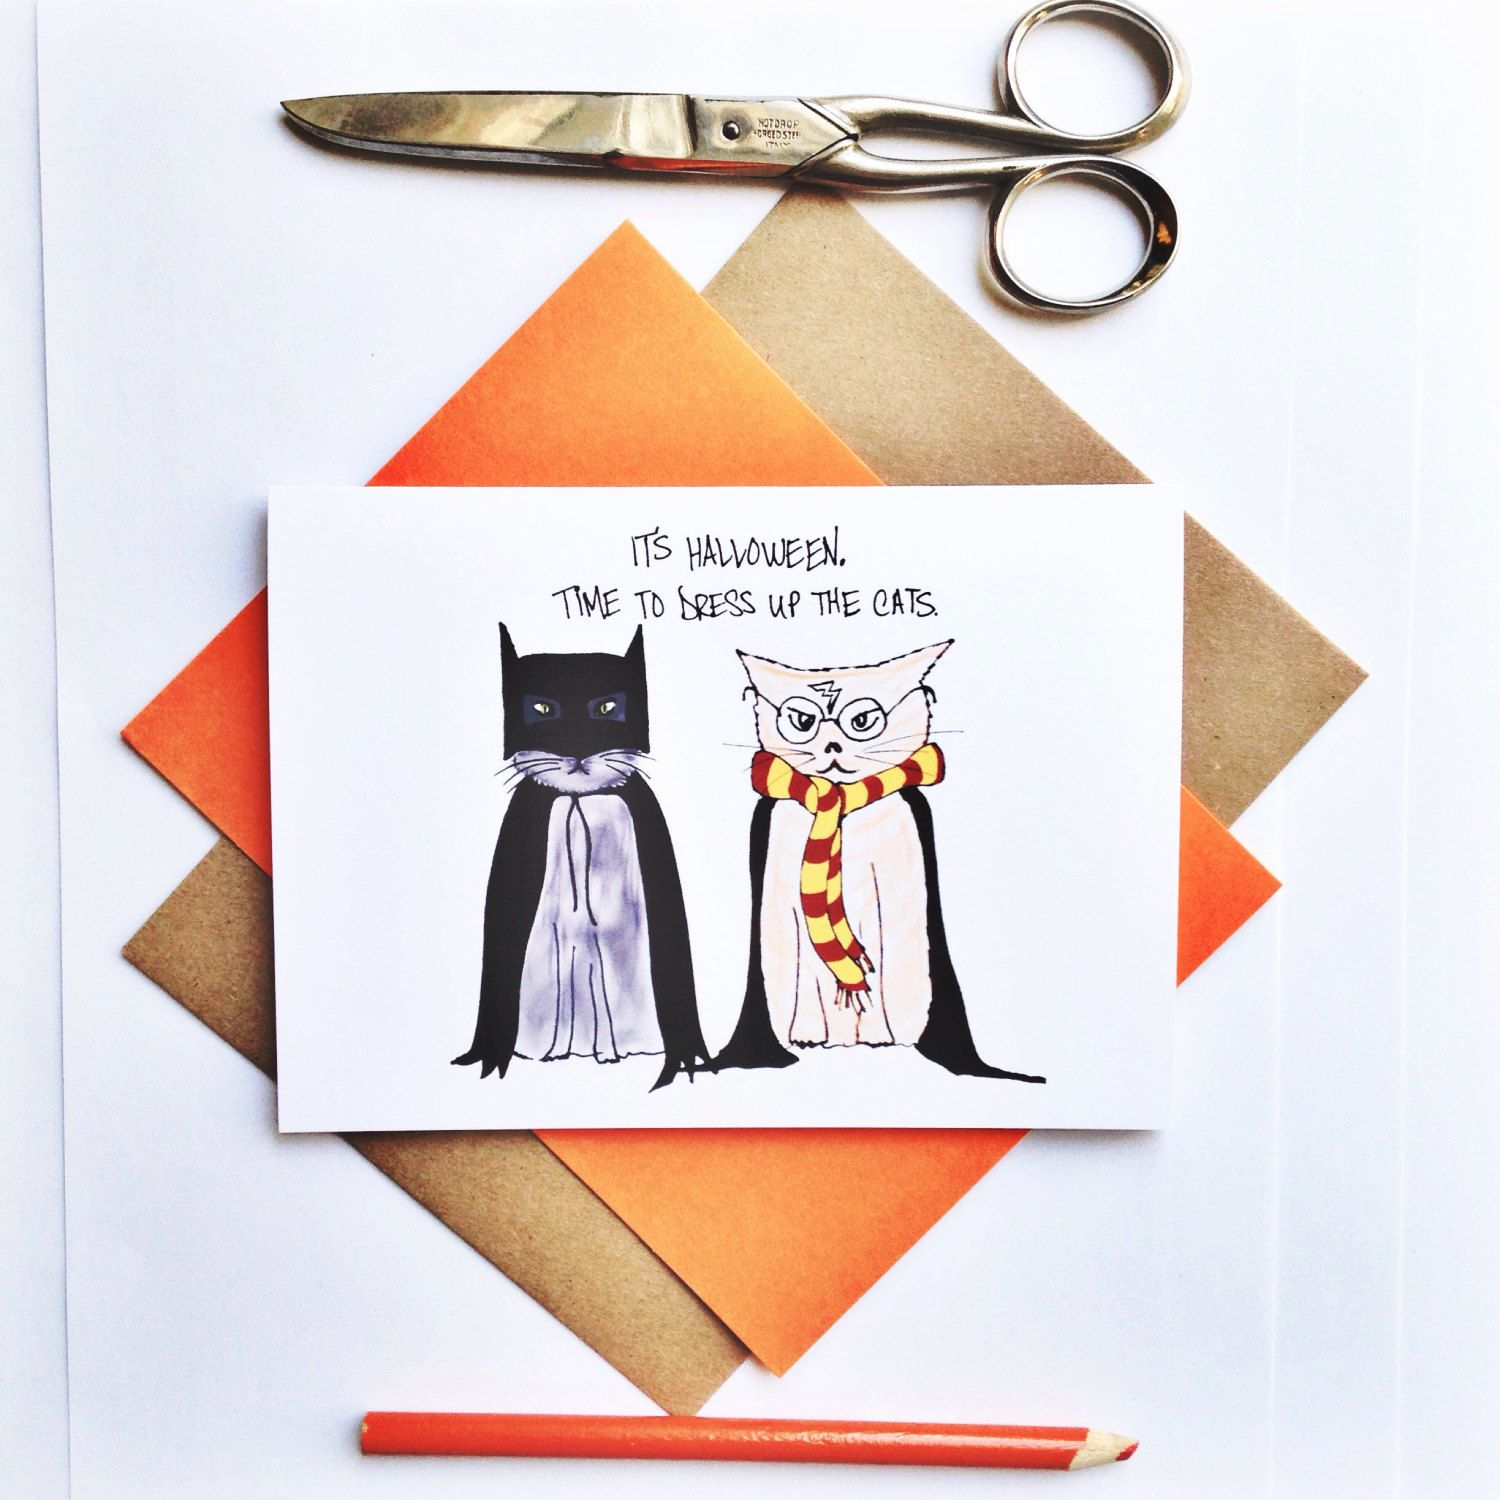 Funny Halloween Card Its Halloween Time To Dress Up The Cats